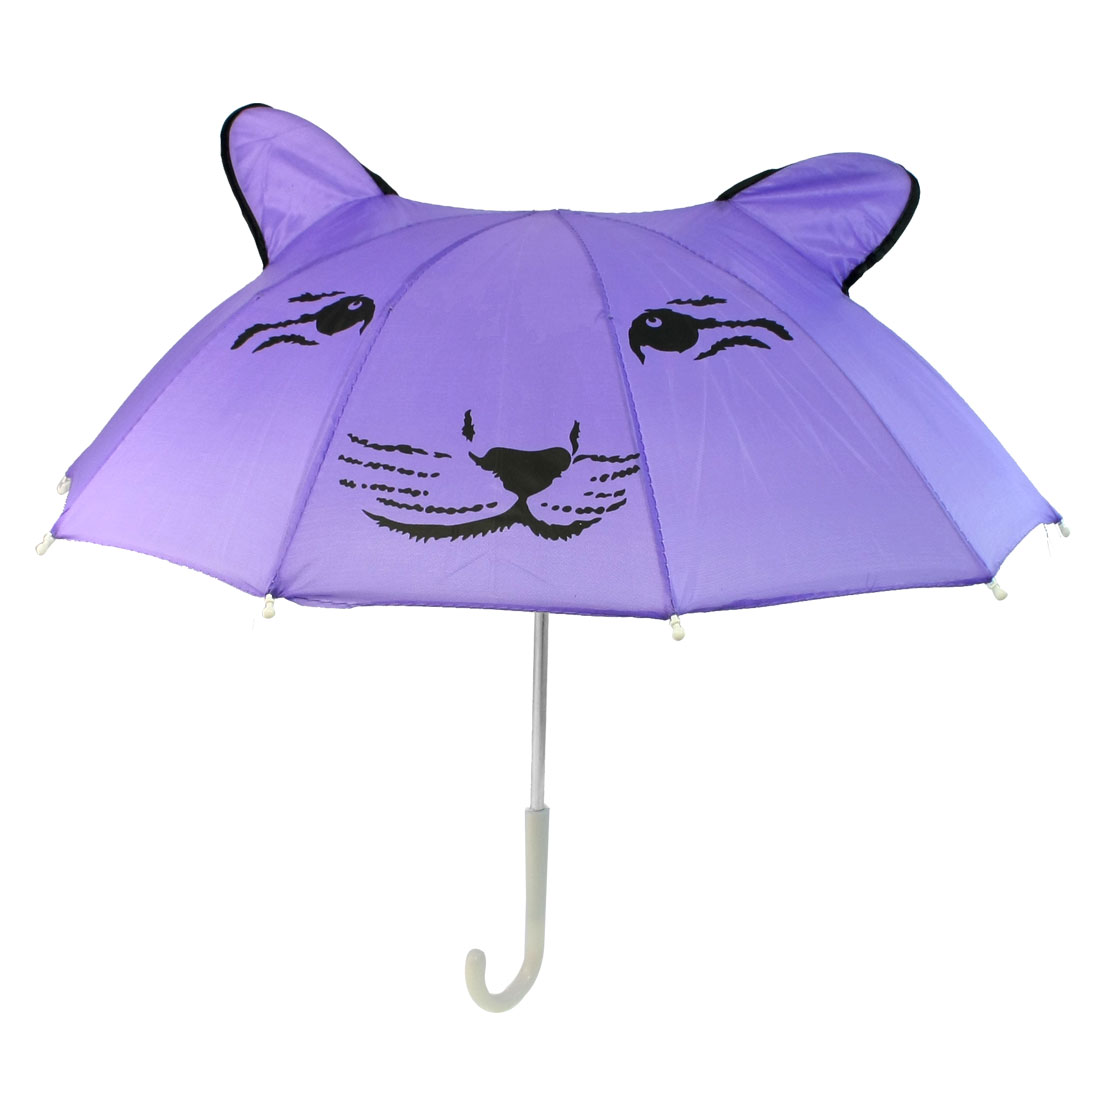 Kids Plastic Handle Tiger Face Printed Folding Mini Umbrella Toy Purple